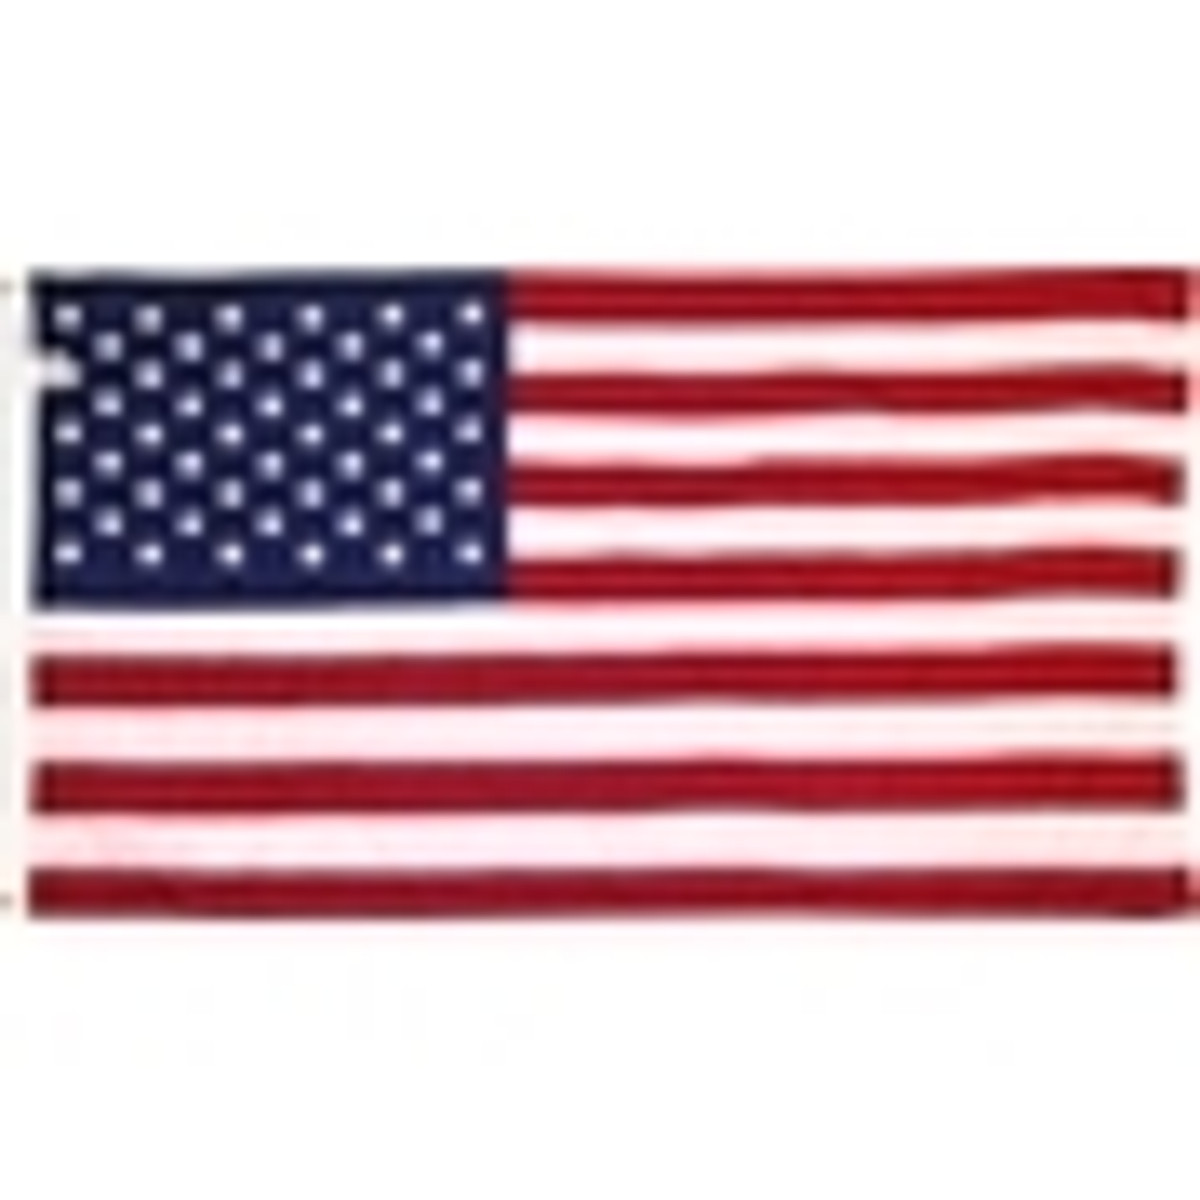 12 x 18ft American Flags